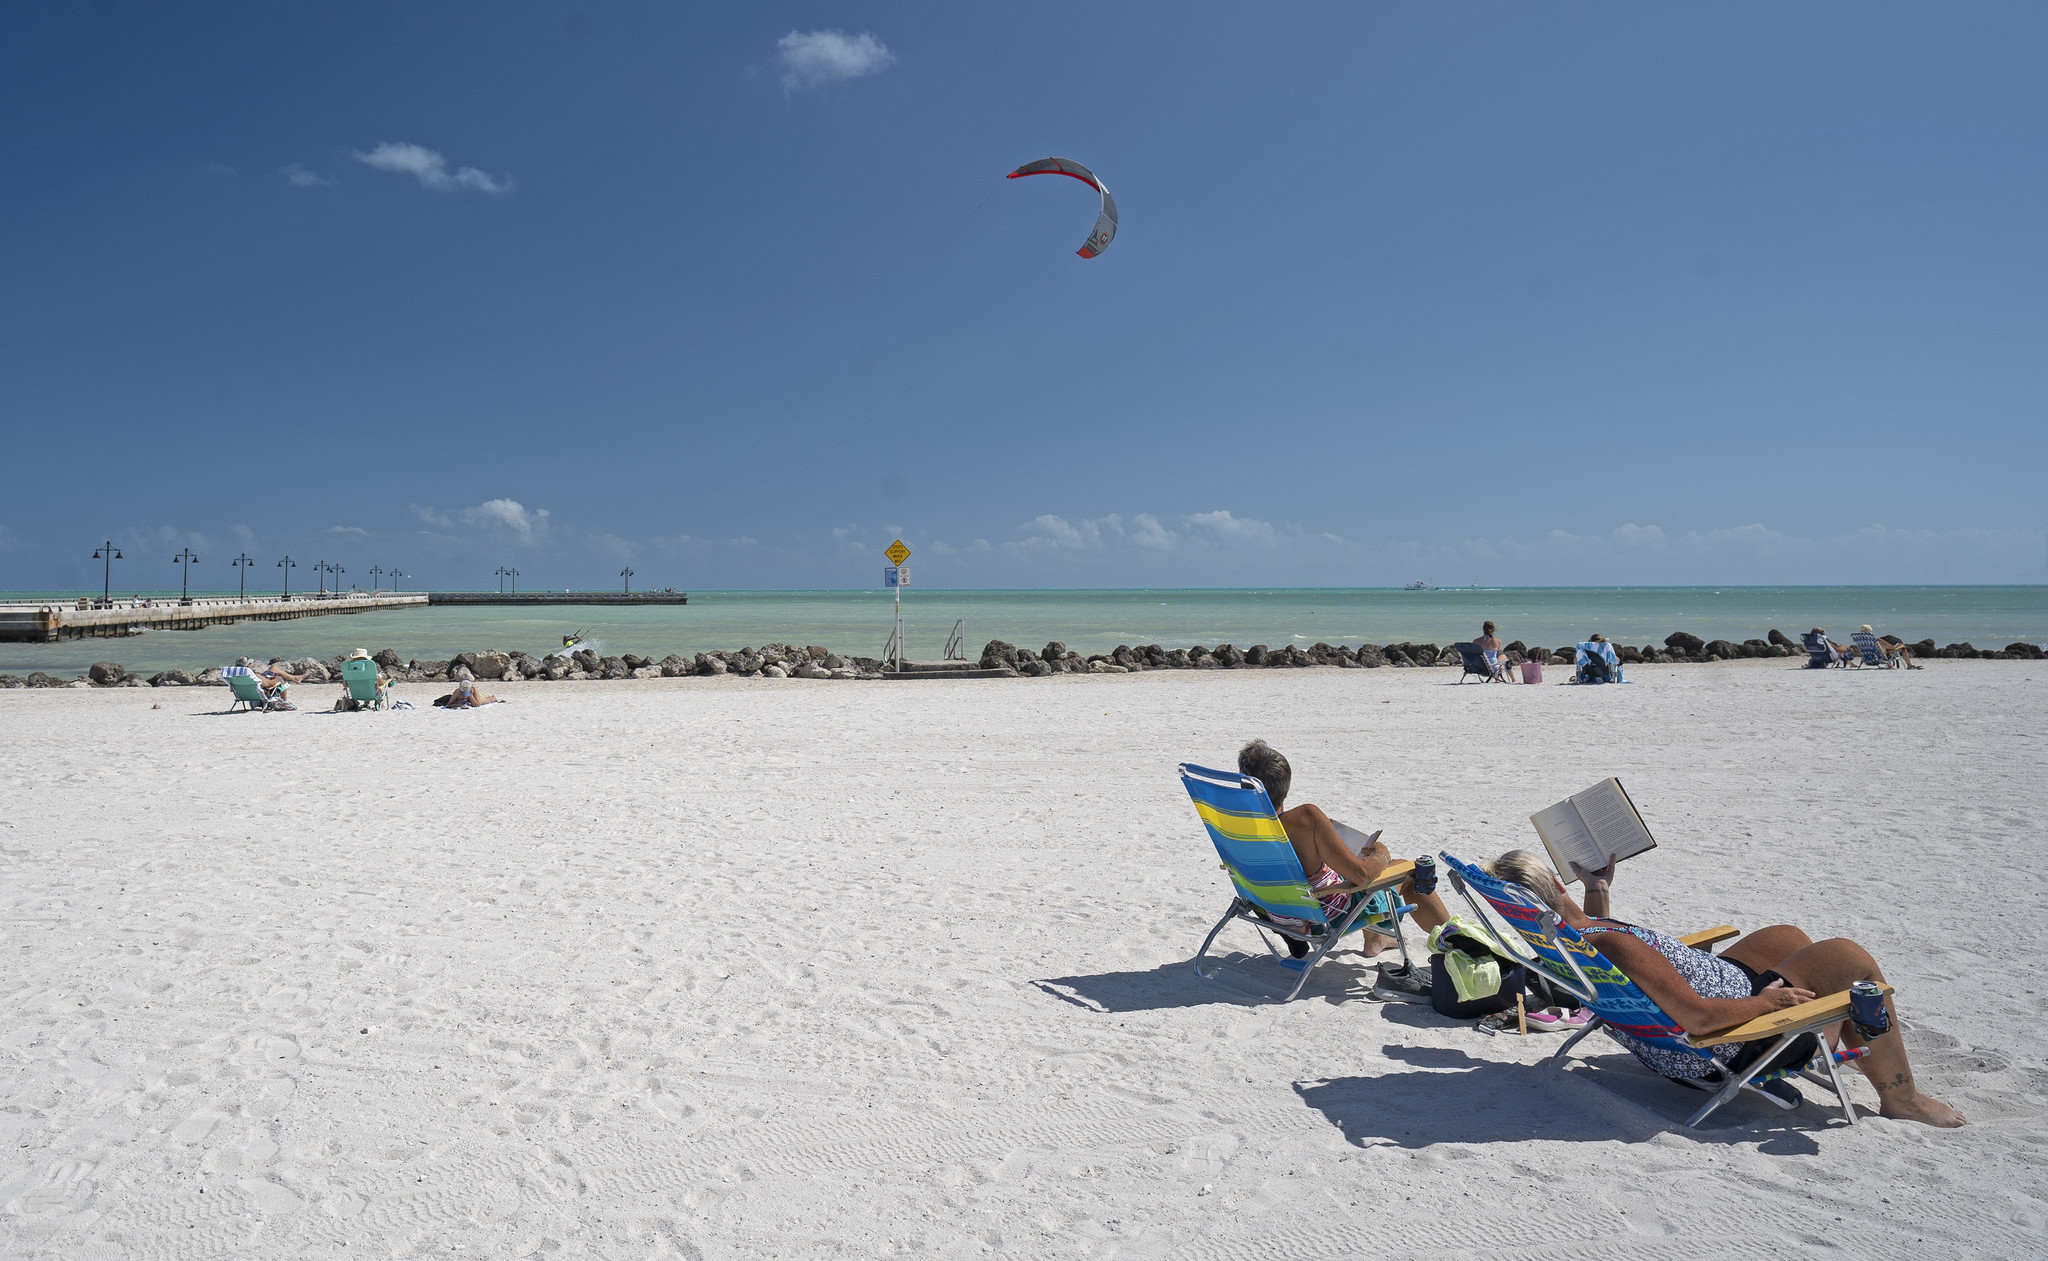 The Florida Keys are closed to tourists due to coronavirus